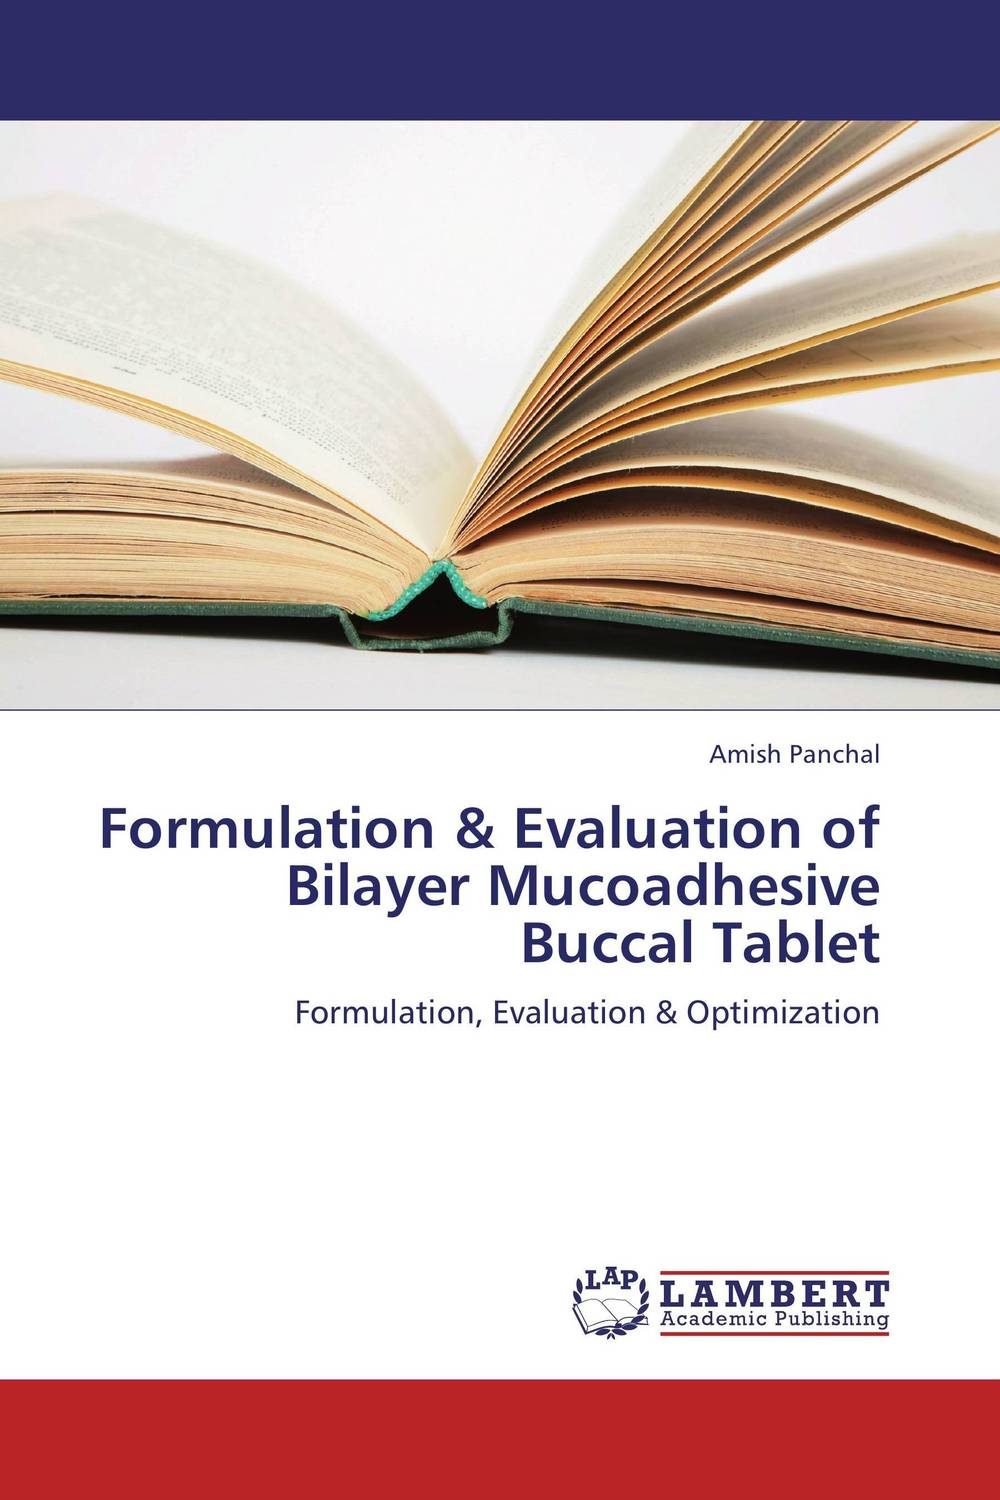 Formulation & Evaluation of Bilayer Mucoadhesive Buccal Tablet formulation and evaluation of mucoadhesive buccal patches of labetalol page 8